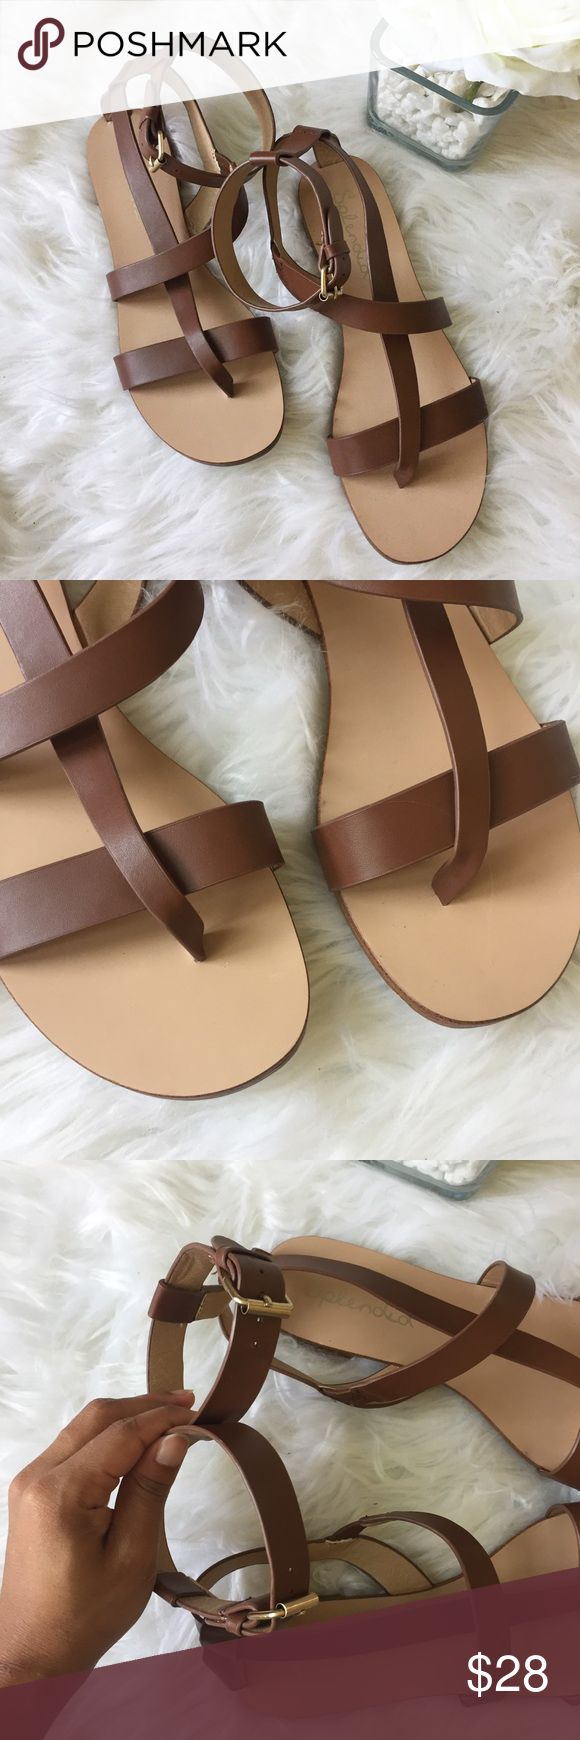 Splendid • Brown Leather Gladiator Sandals Brown leather low gladiator sandals by Splendid. In perfect condition! The only wear is on the bottoms. Size 7.5 Splendid Shoes Sandals